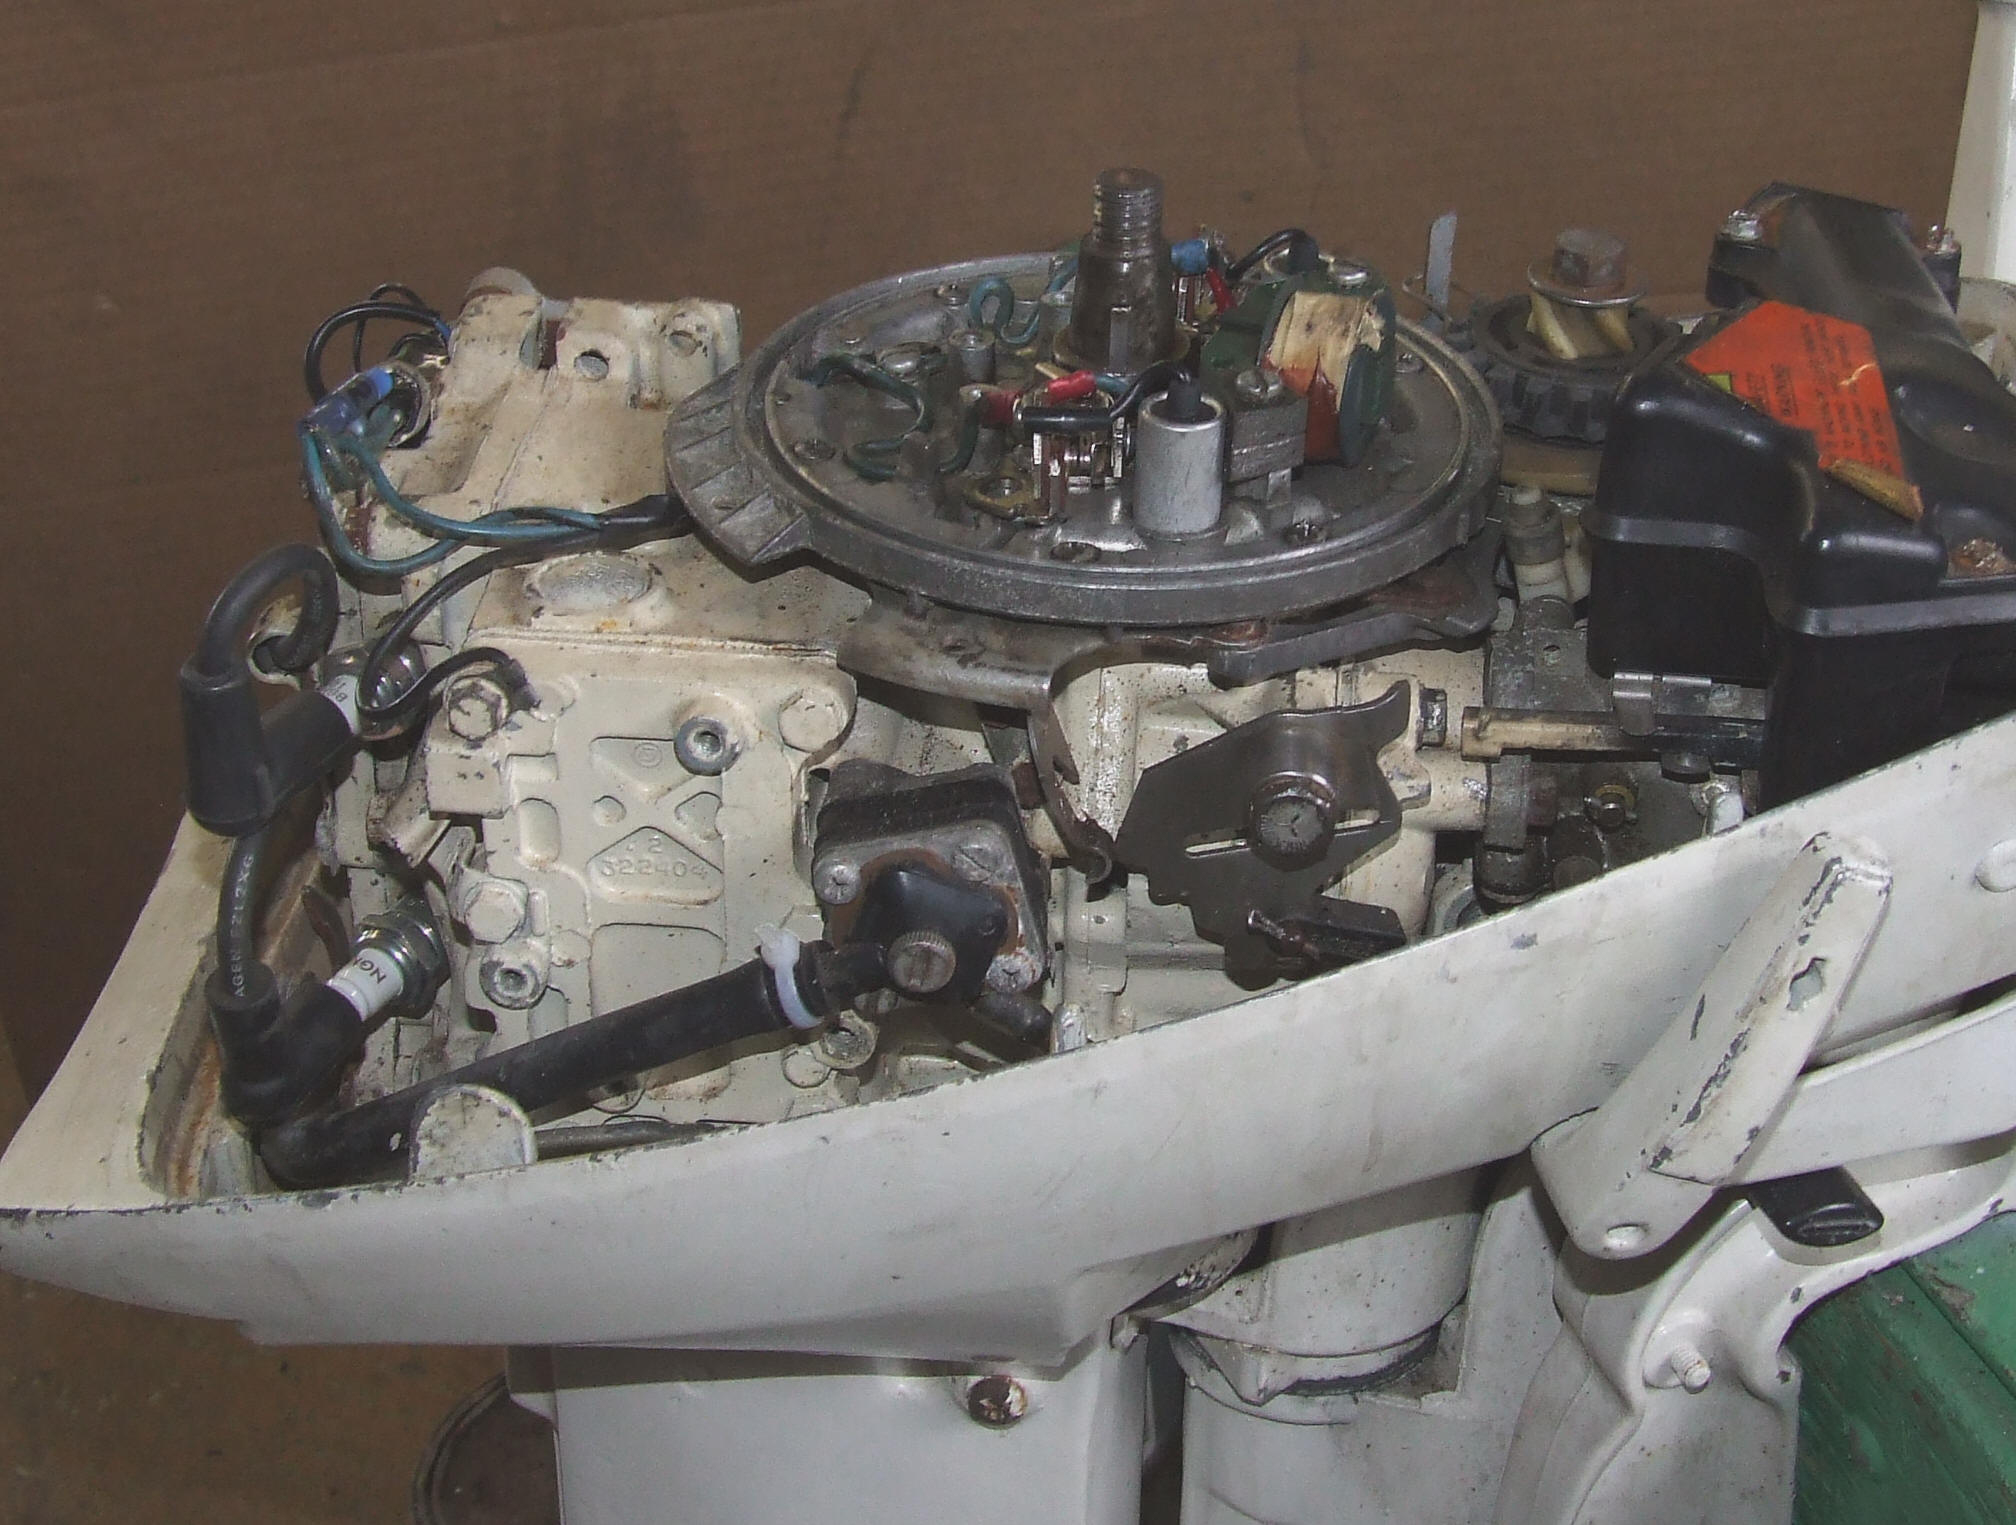 1982 35 Hp Johnson Outboard Wiring Harness Free Picture | Wiring Library - Wiring Diagram For Mercury Outboard Motor